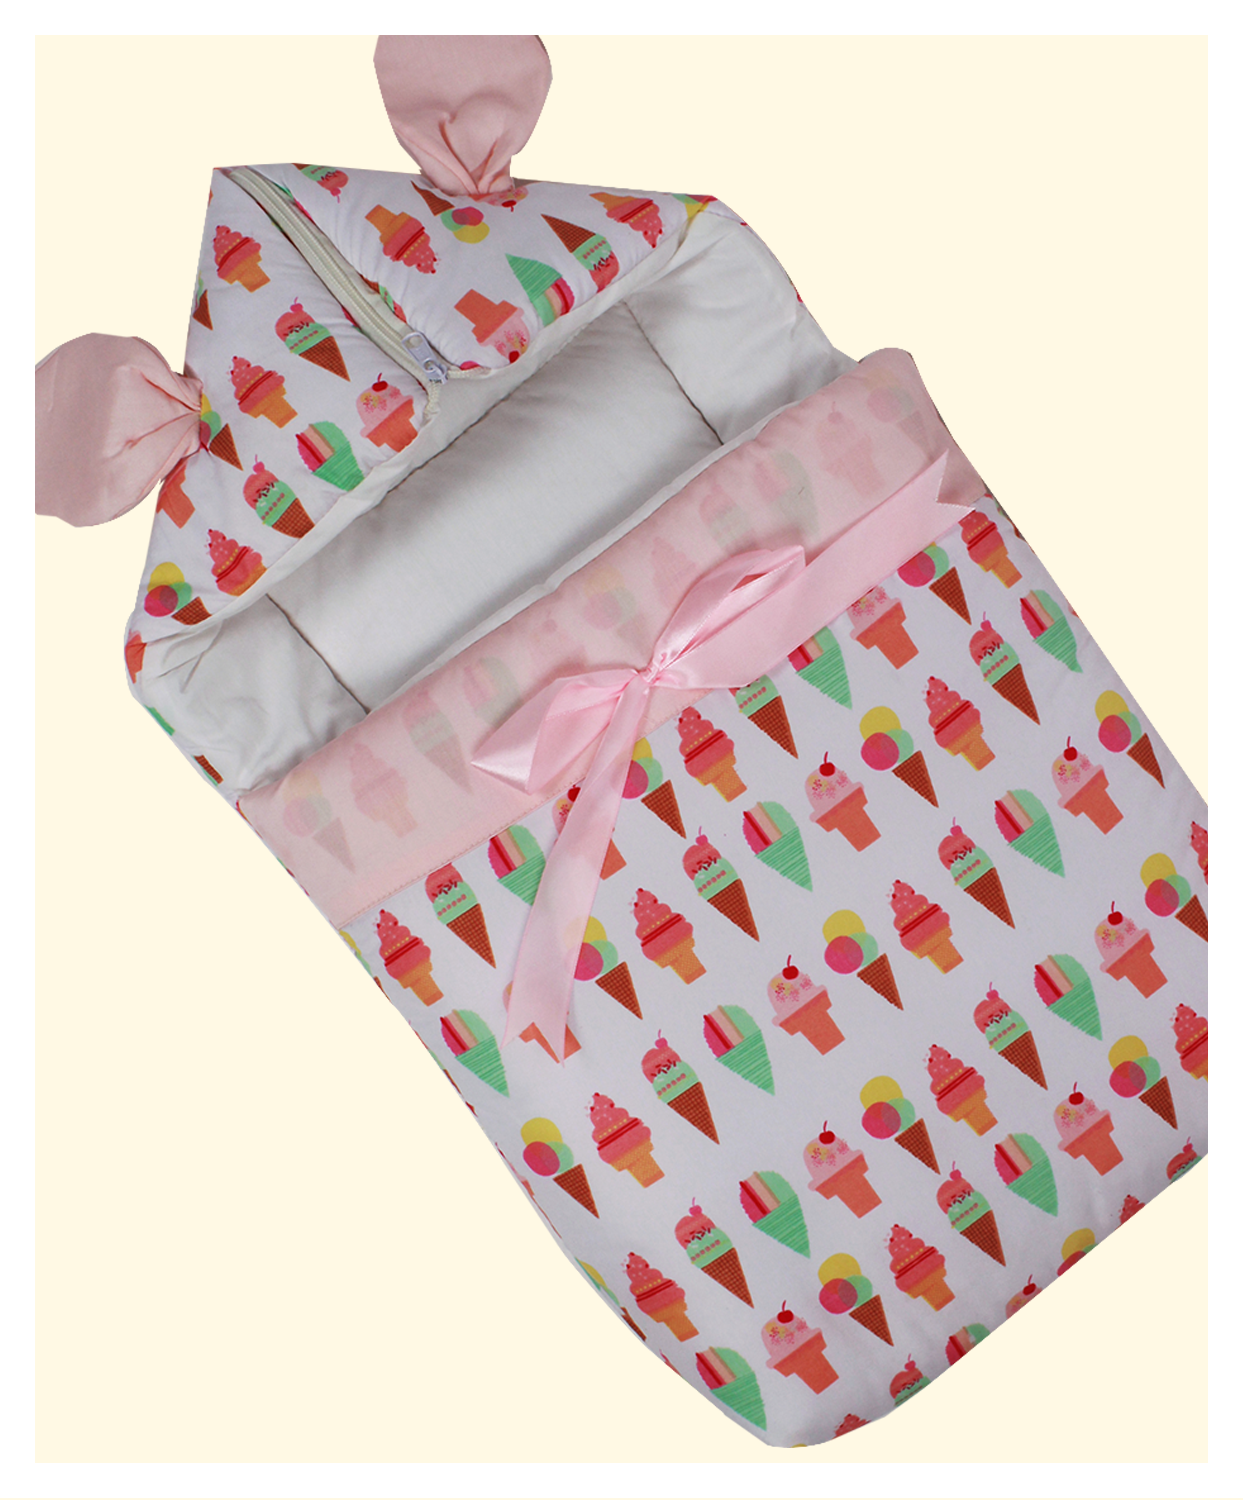 Baby Hug Sleeping Bag Price In Pakistan Newborn Baby Hug Bag